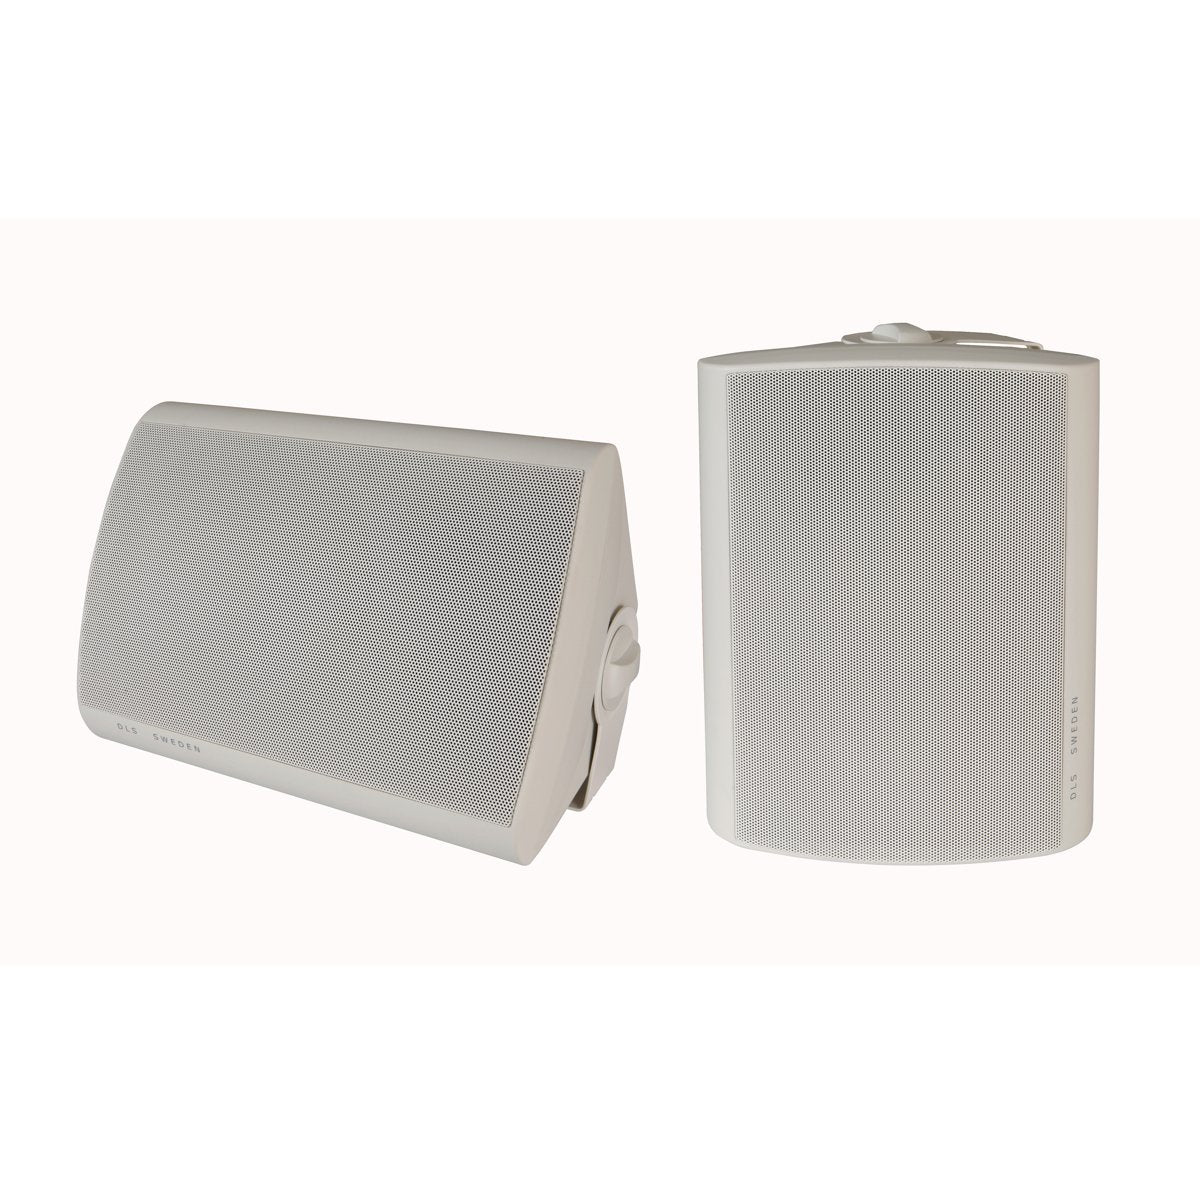 DLS MB6i - 2-way All Weather Speaker  - Pair, DLS, Outdoor Speaker - Auratech LLC